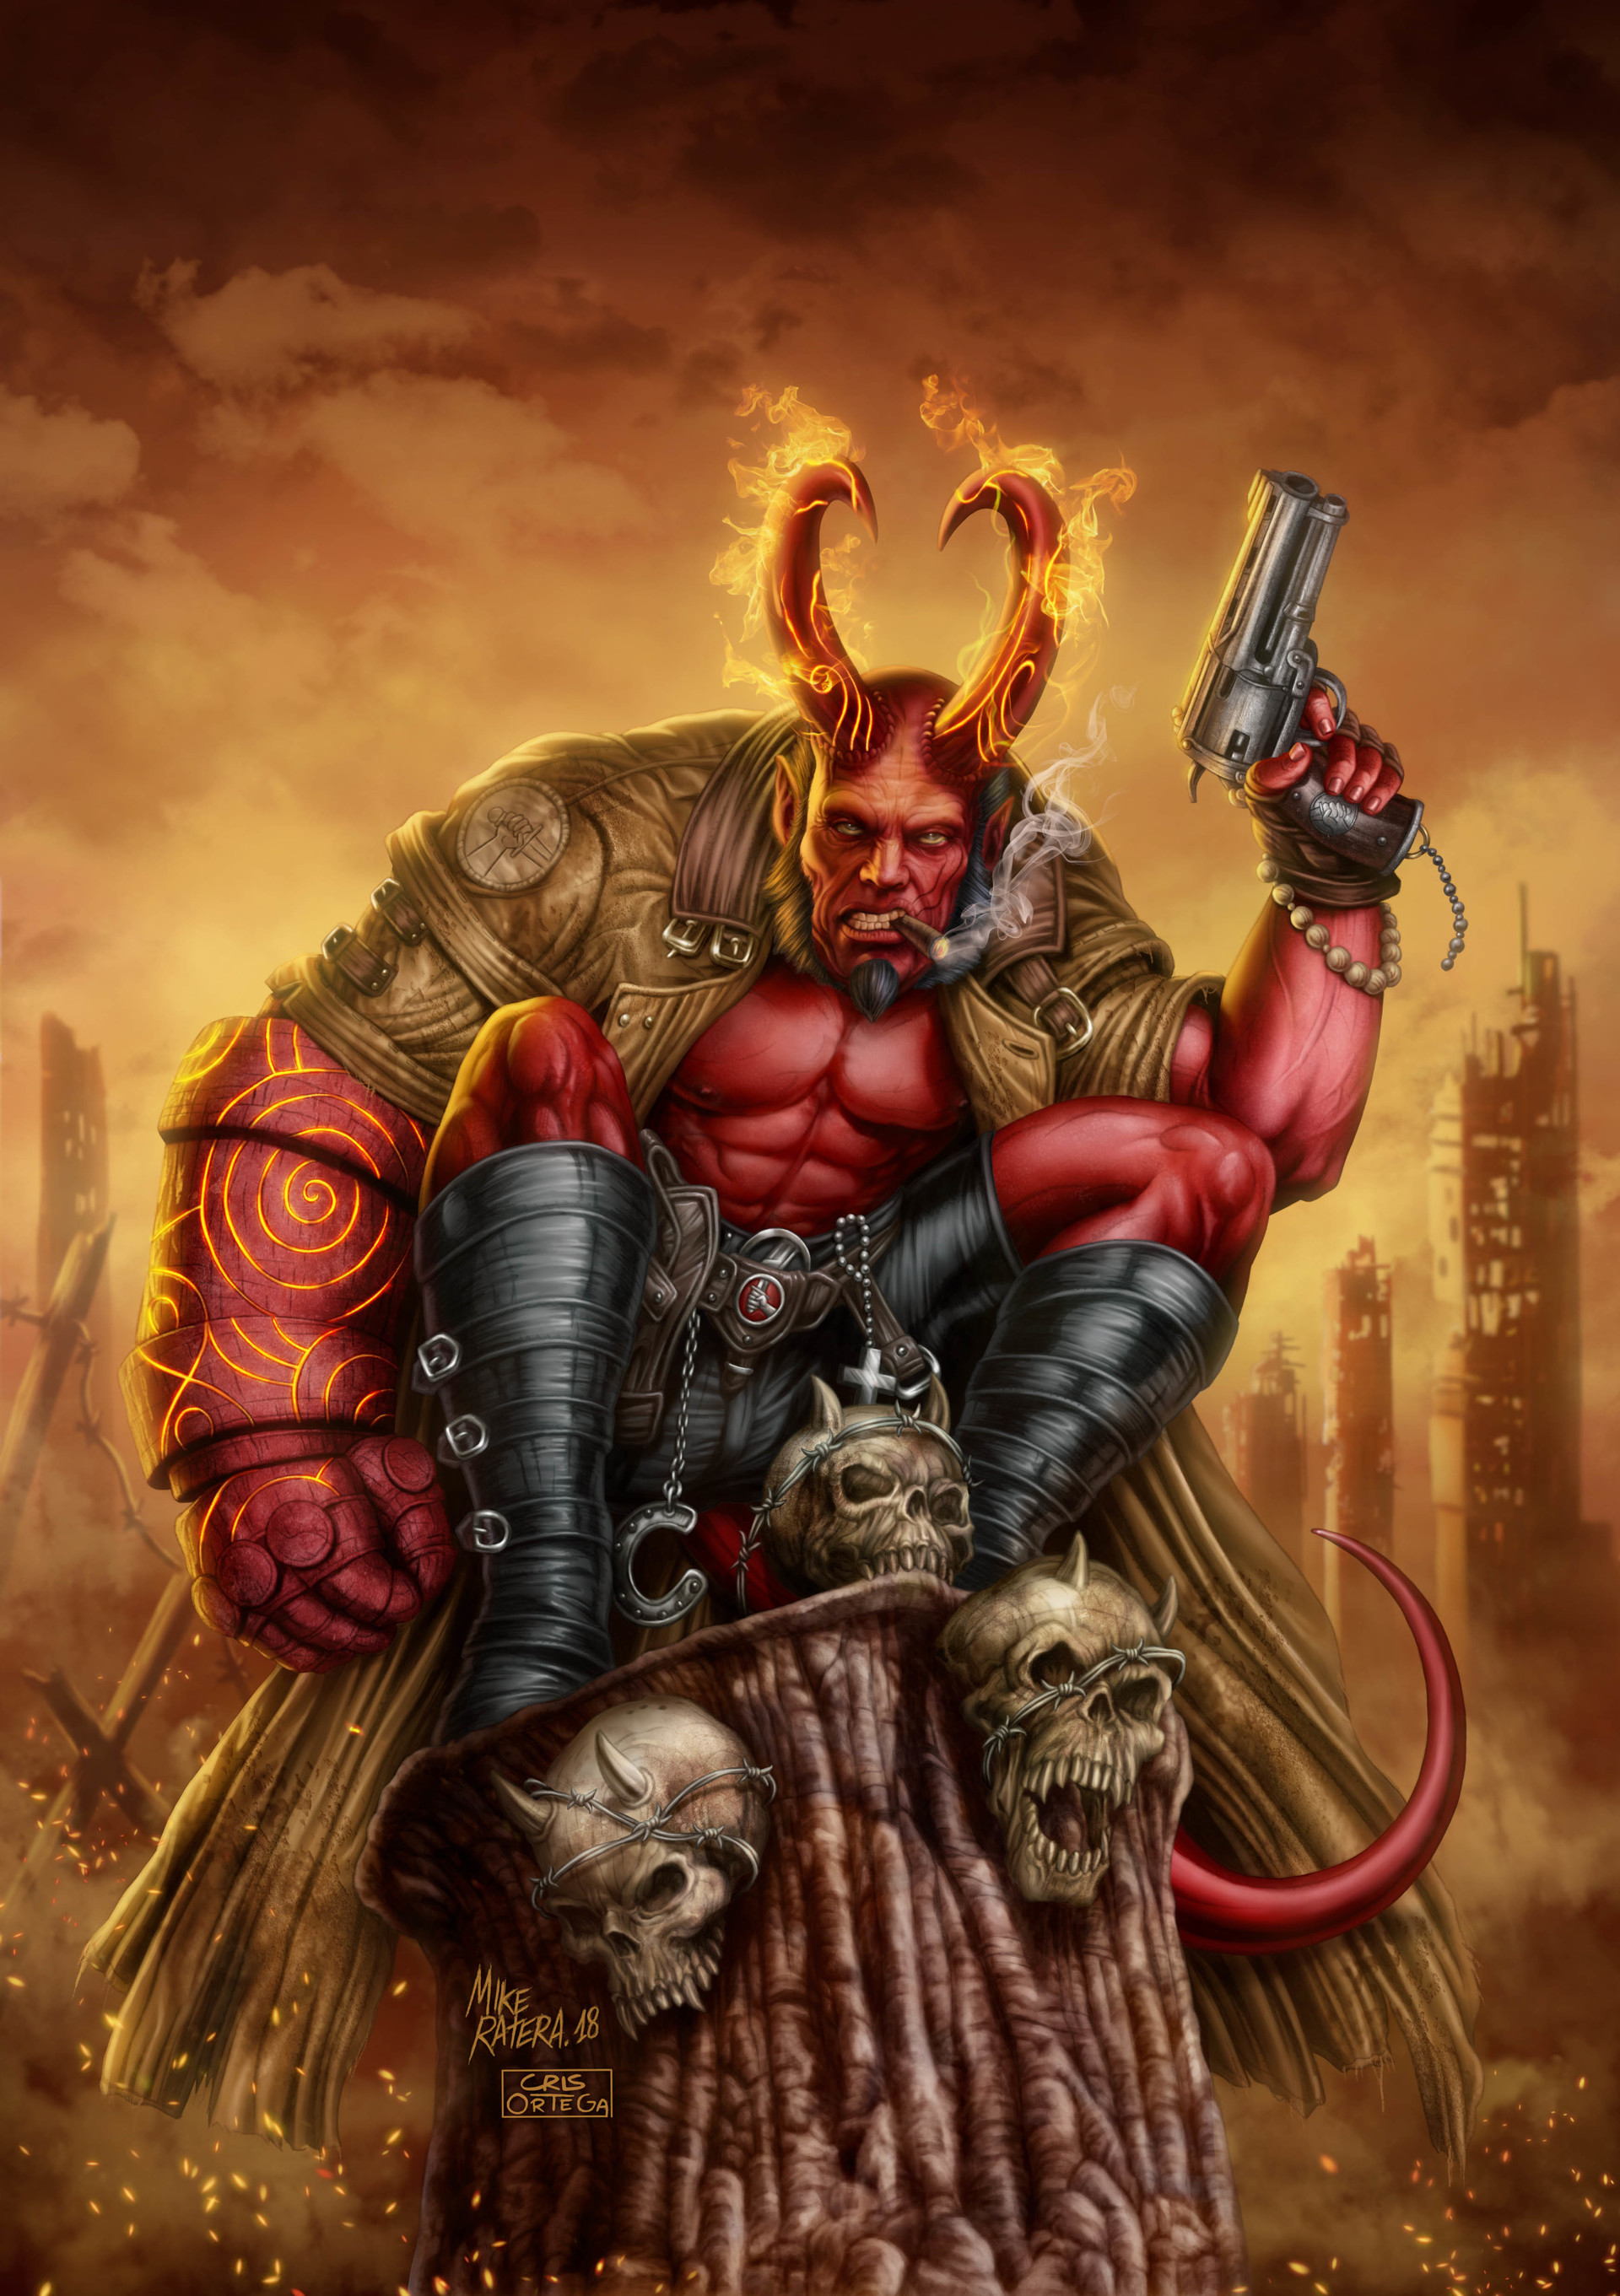 Mike ratera hellboy cover color